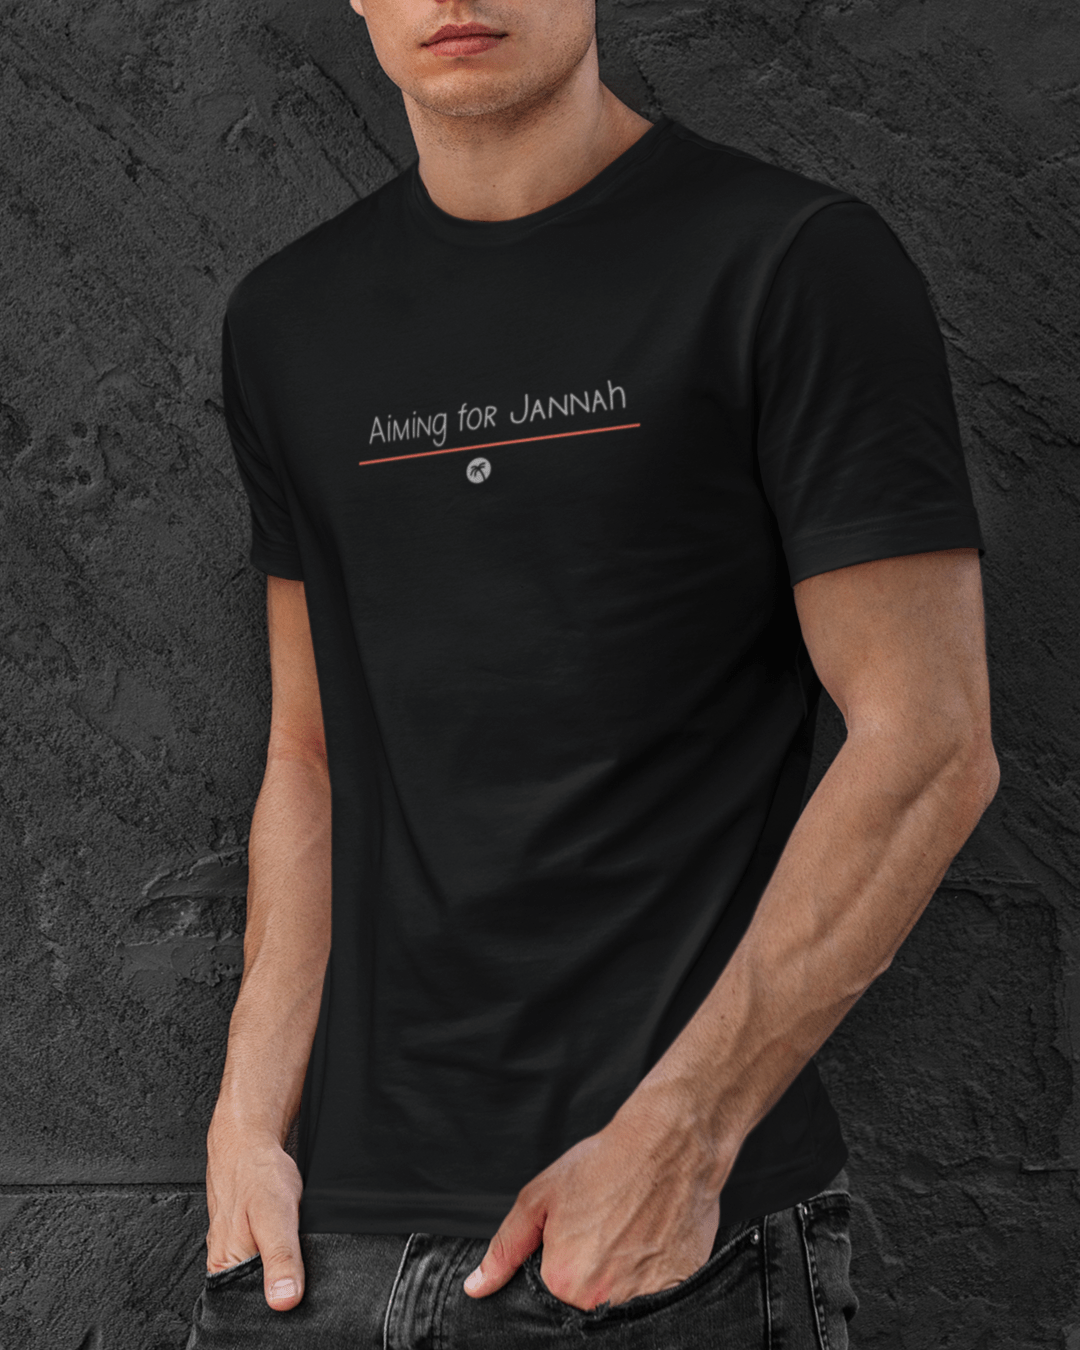 t-shirt-mockup-featuring-a-serious-looking-man-posing-against-a-dark-stone-wall-427-el